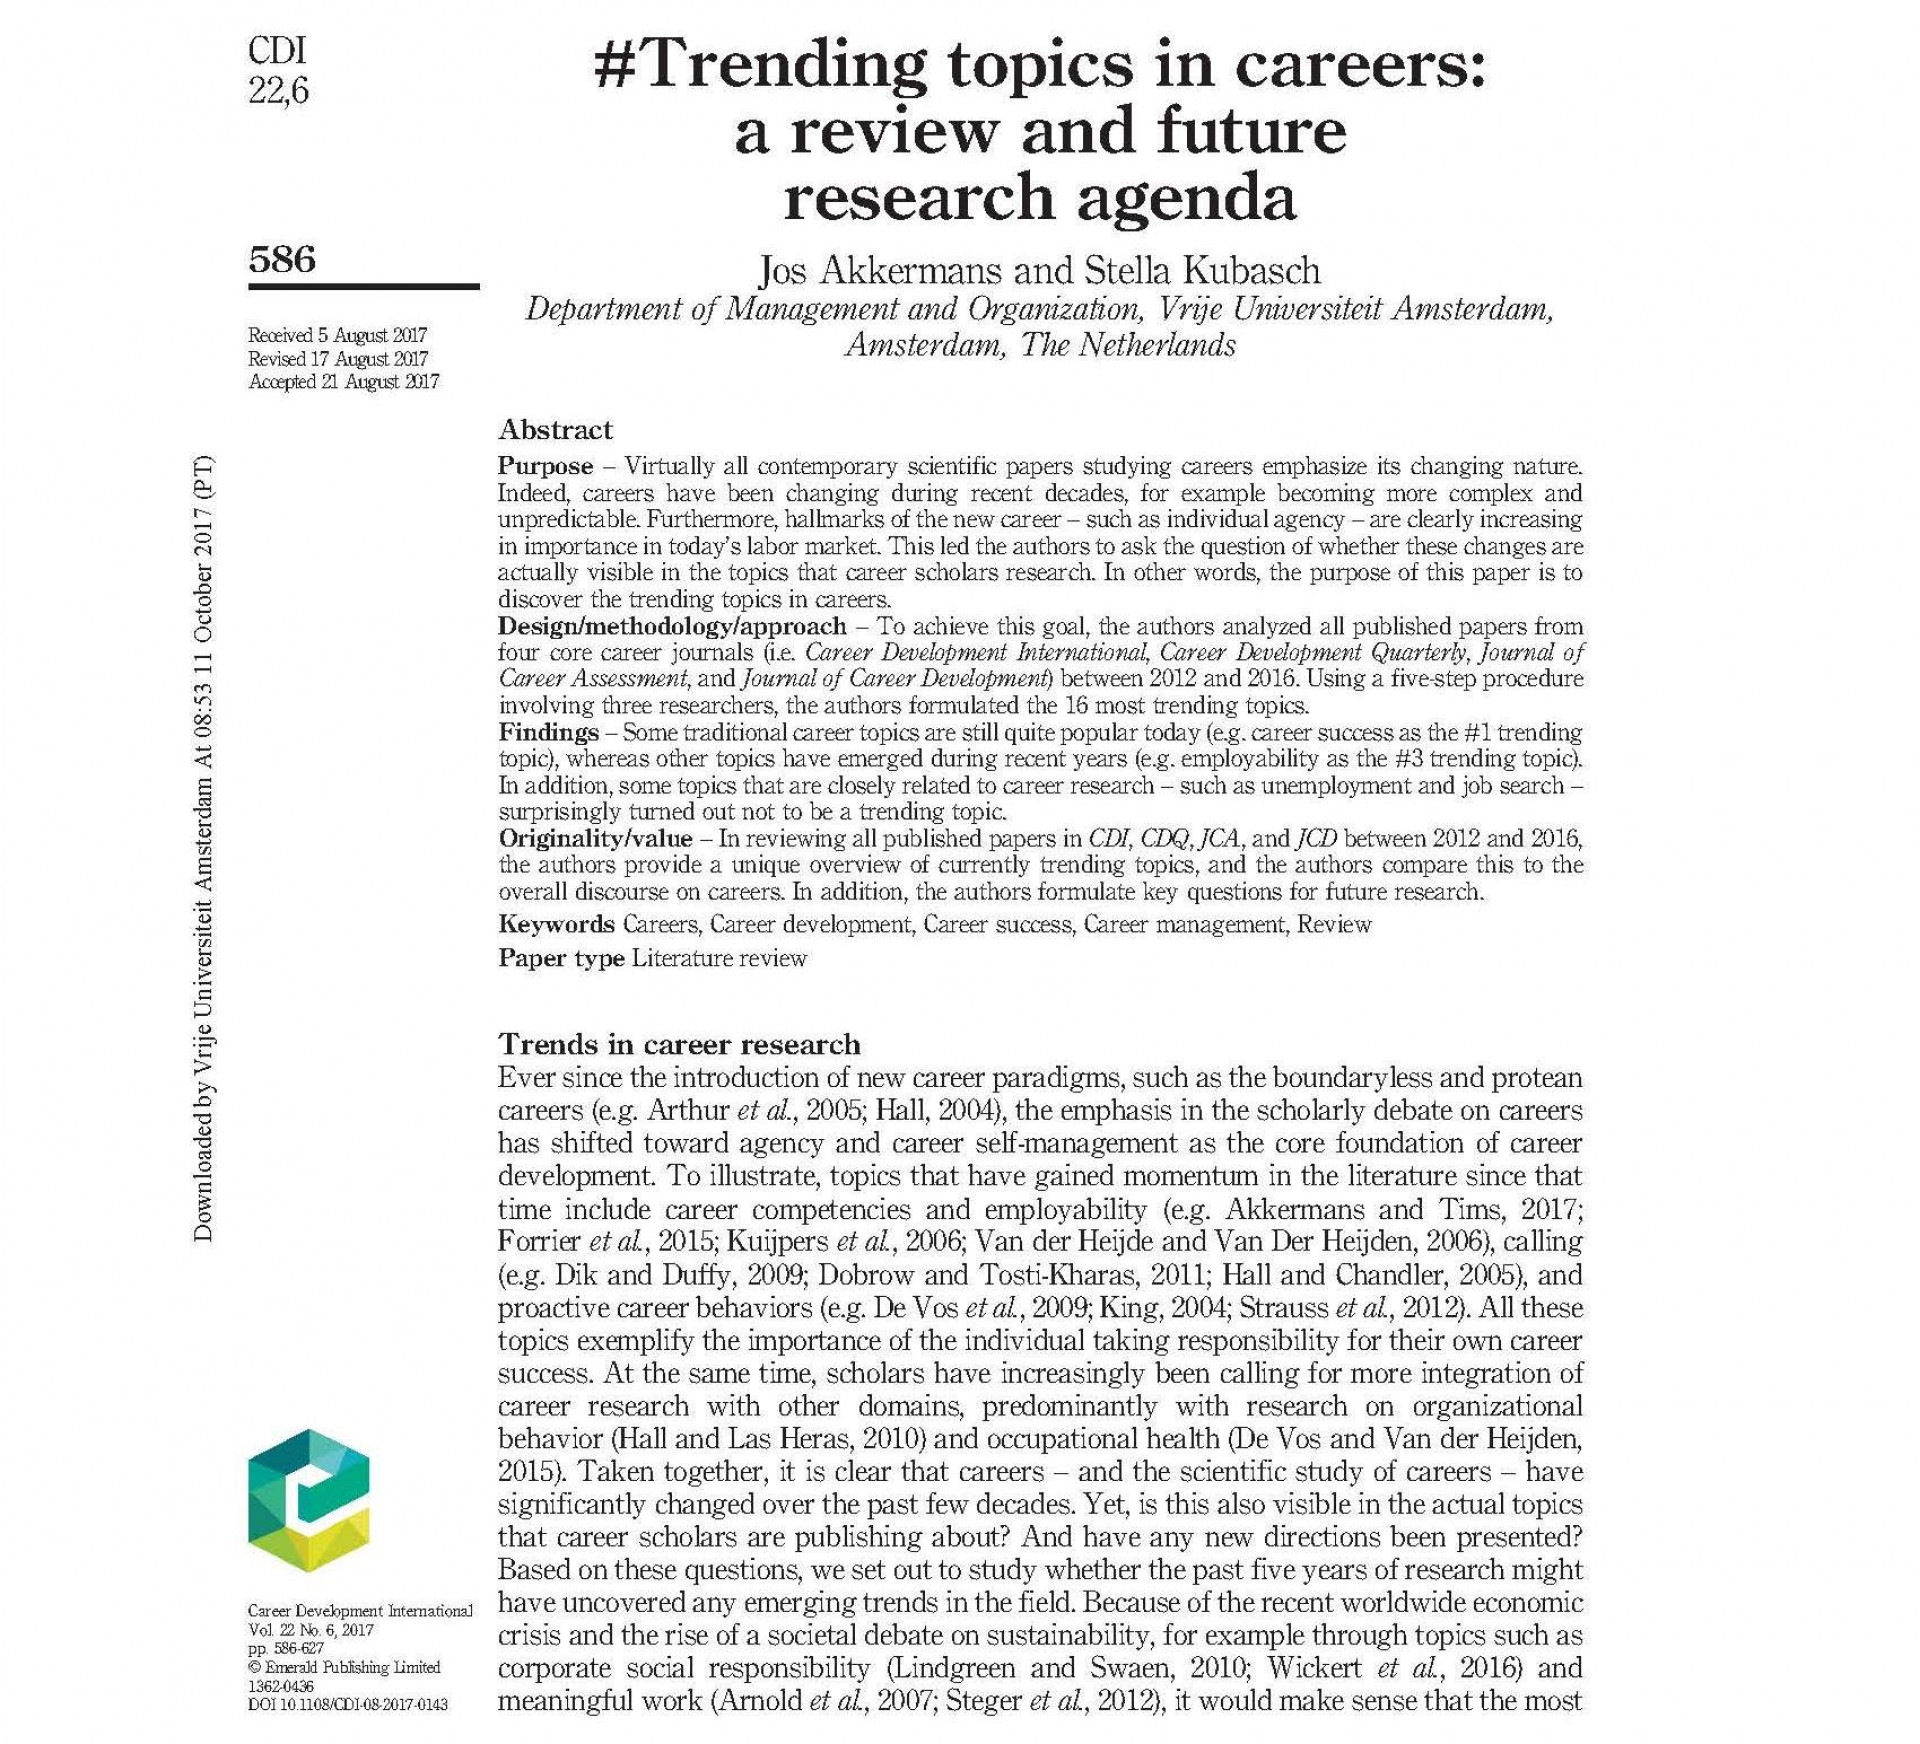 022 59e096d33a29650001209782 1620 20akkermans202620kubasch20201720 20trending20topics20in20careers Research Paper Topics For Impressive Papers American History Sports 2019 1920